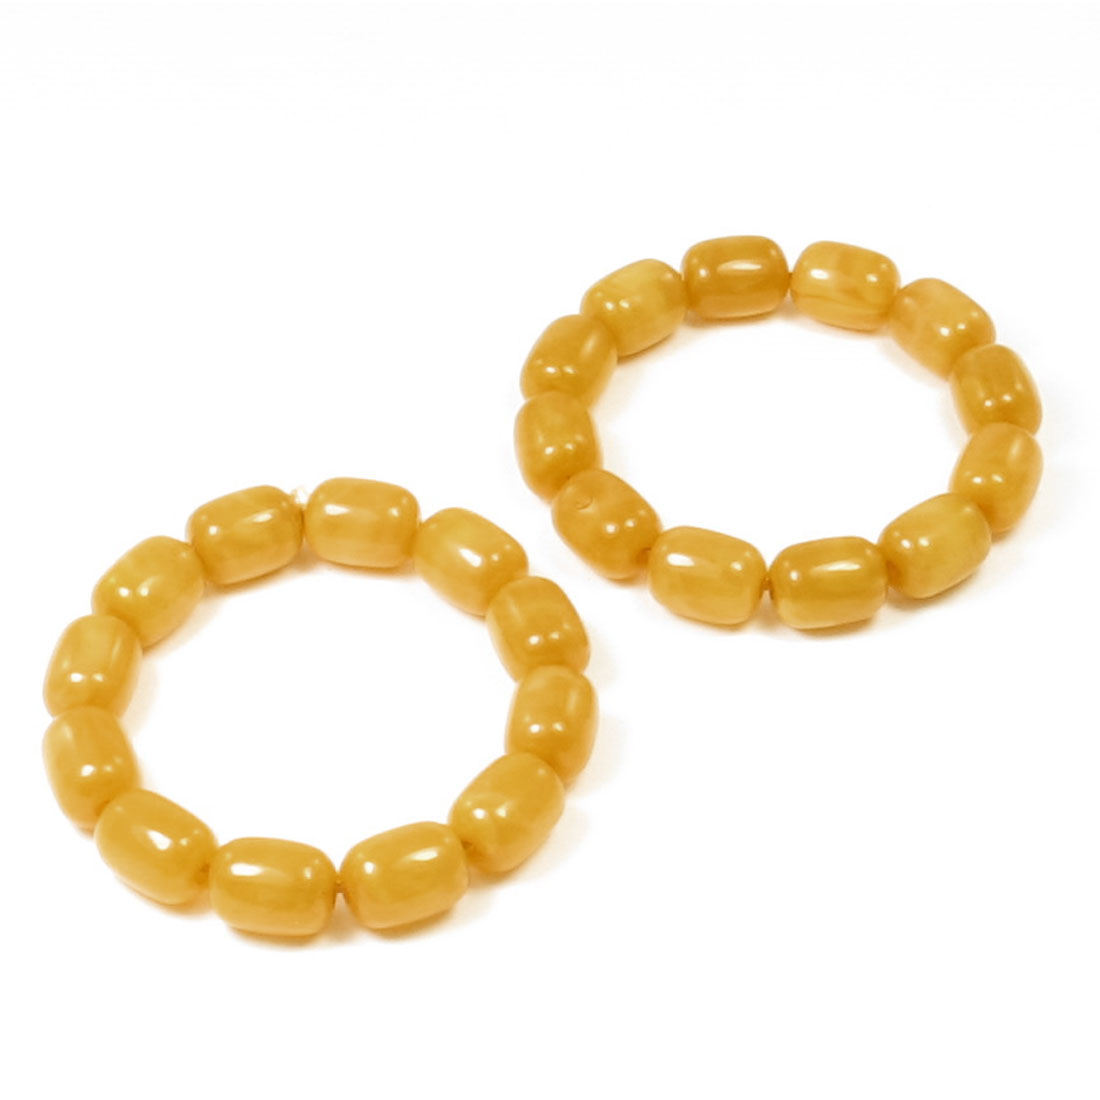 2pcs Amber Color Plastic Cylinder Beads Linked Elastic Prayer Wrist Bracelet